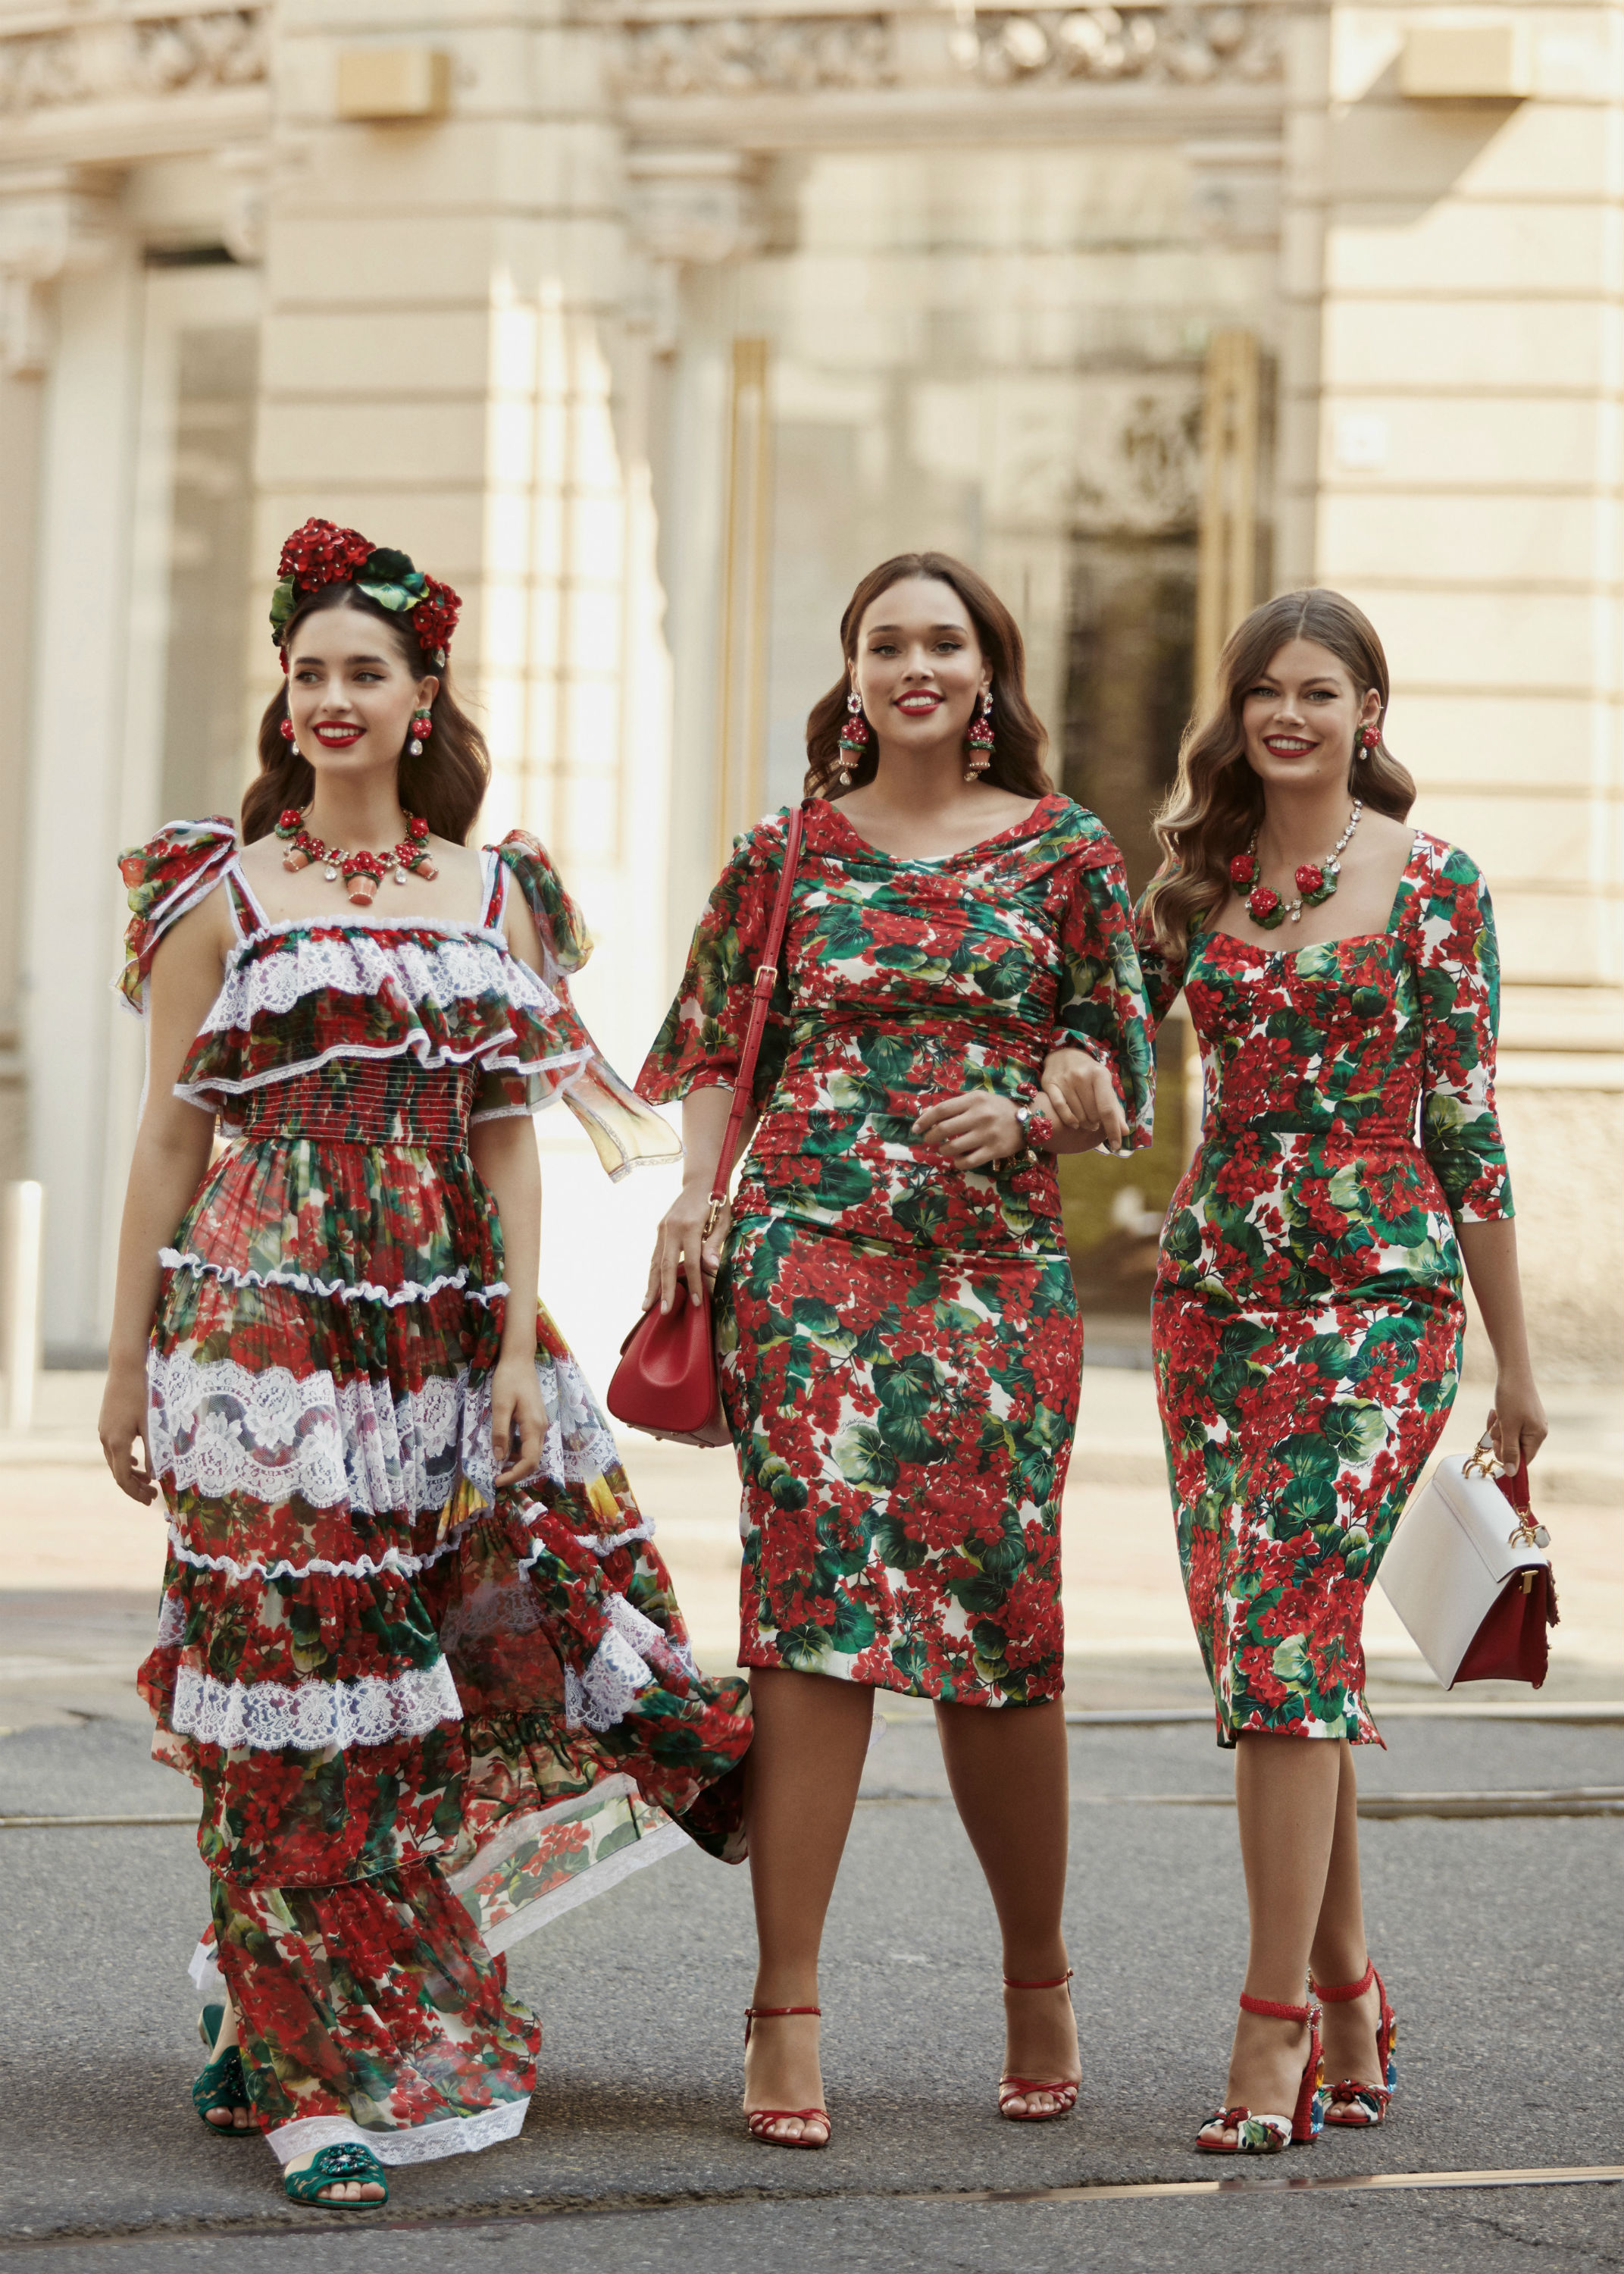 Dolce and Gabbana Dresses On Sale,dolce and gabbana dress,dolce and gabbana dress,dolce and gabbana dress,